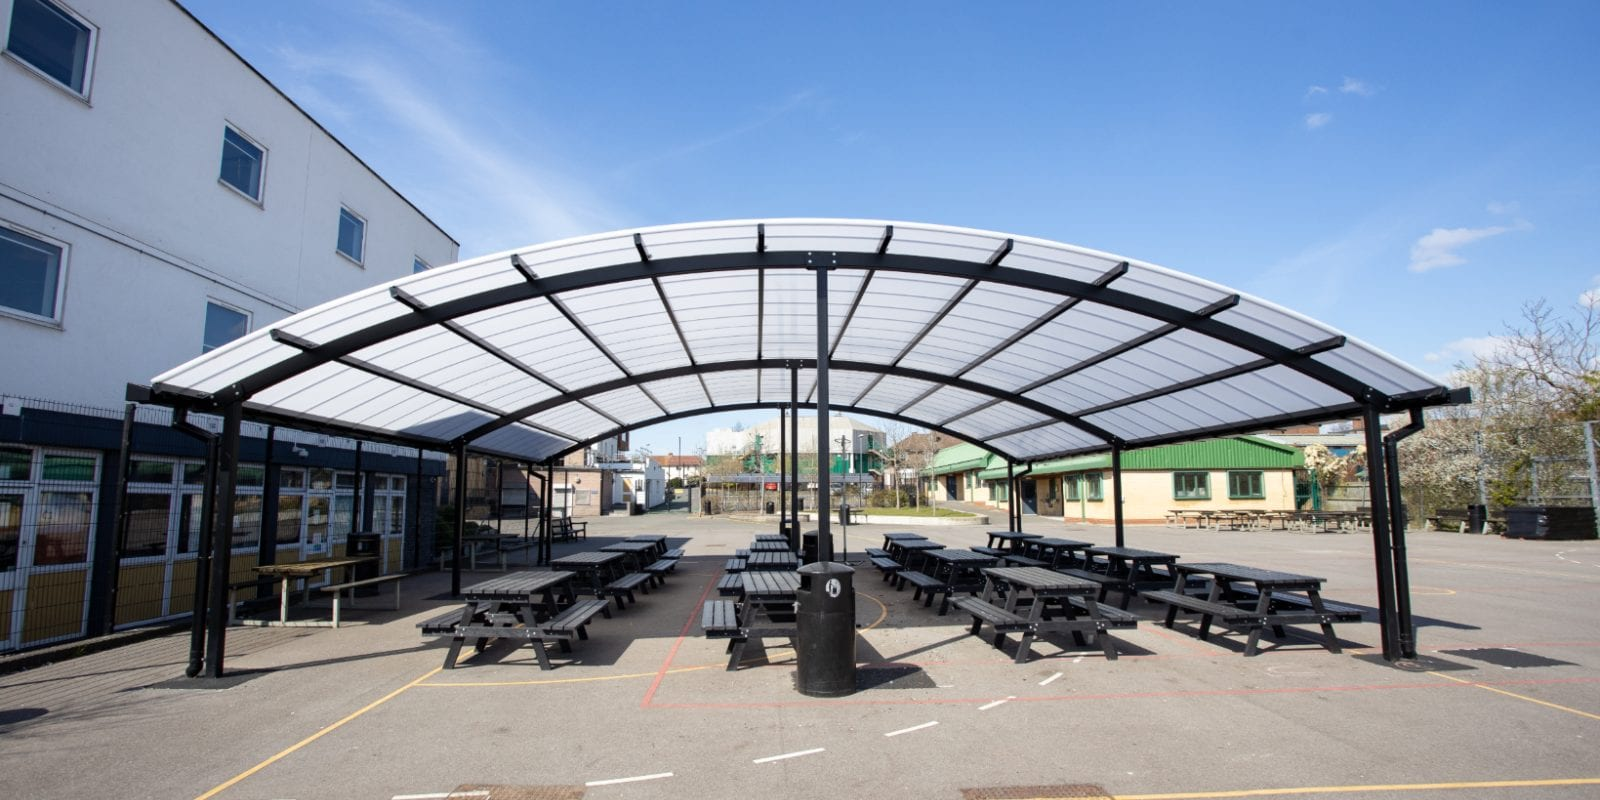 Freestanding shelter we created for The Cardinal Wiseman School